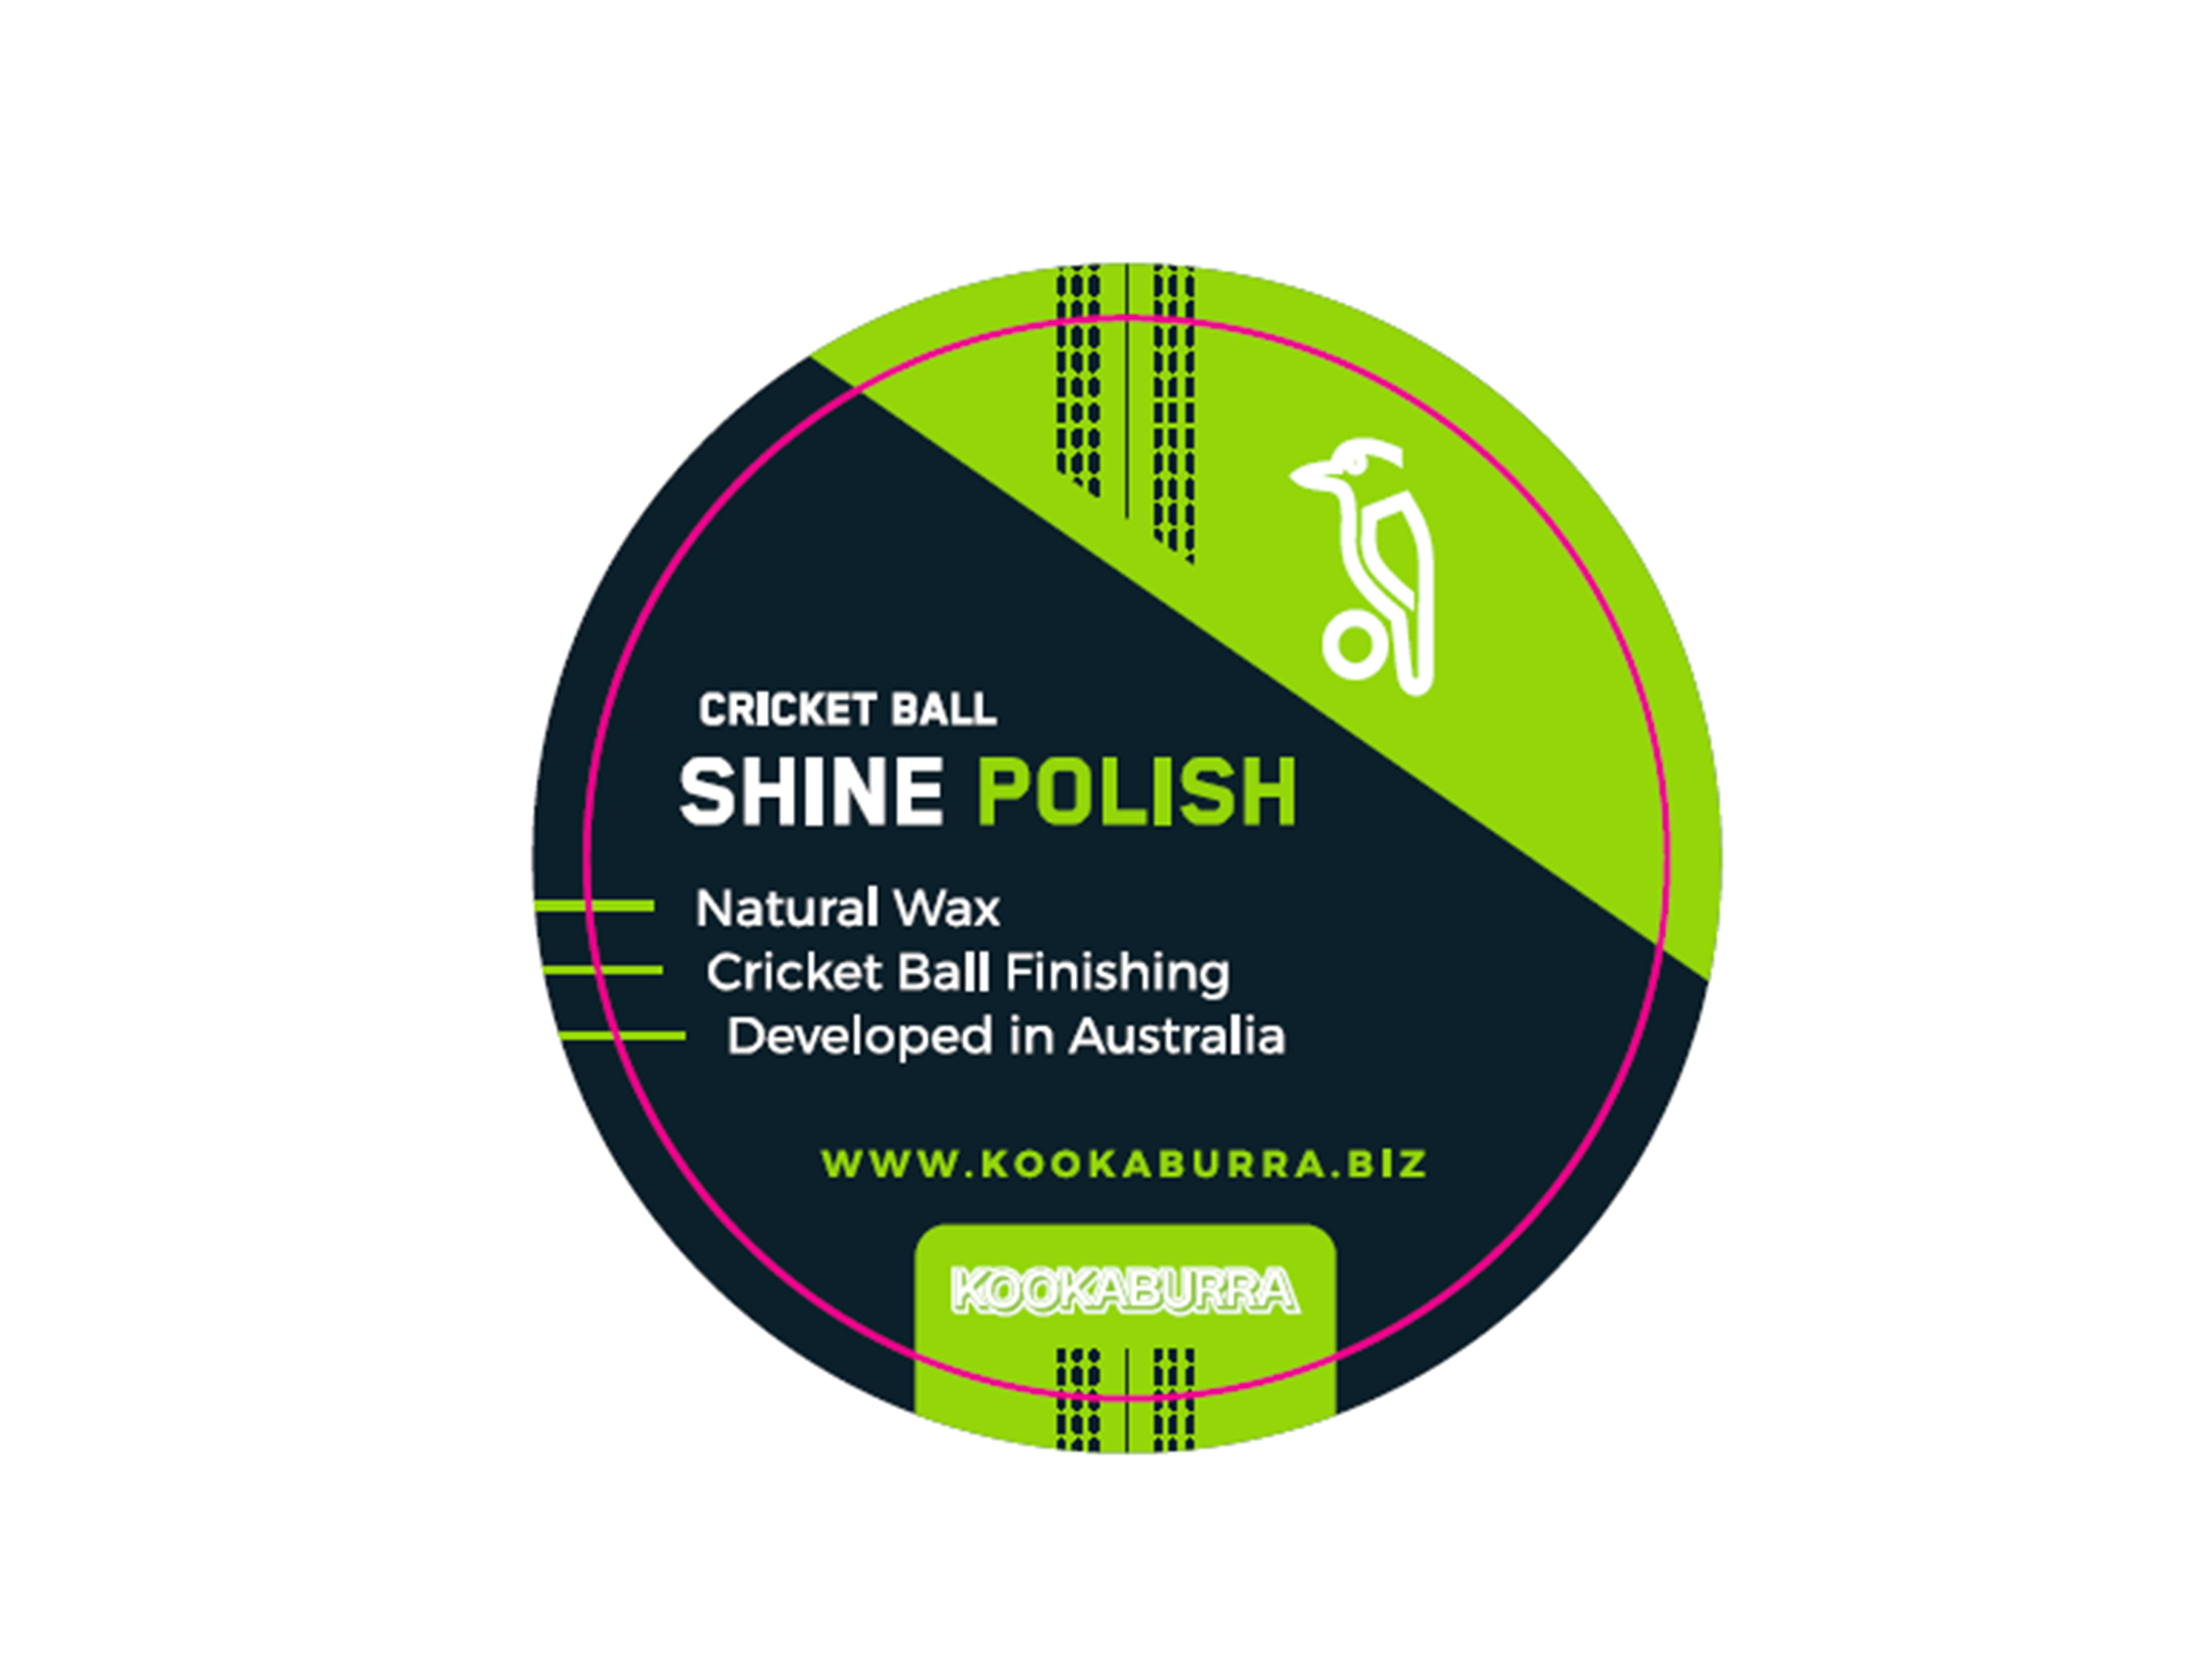 Prototype packaging for Kookaburra's new wax polish.